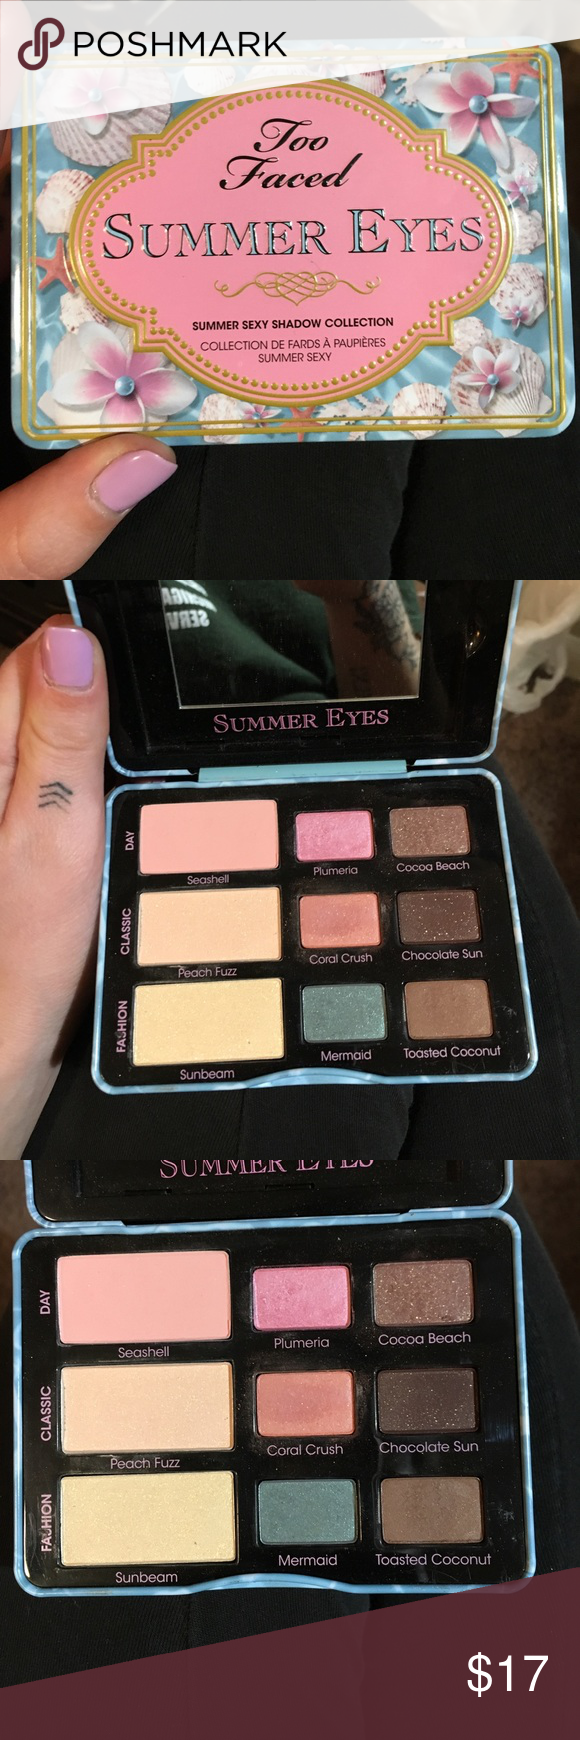 Too faced summer eyes pallet Super pretty! Used a few times. I just have sooo many eyeshadow pallets, I need to downsize! Too Faced Makeup Eyeshadow